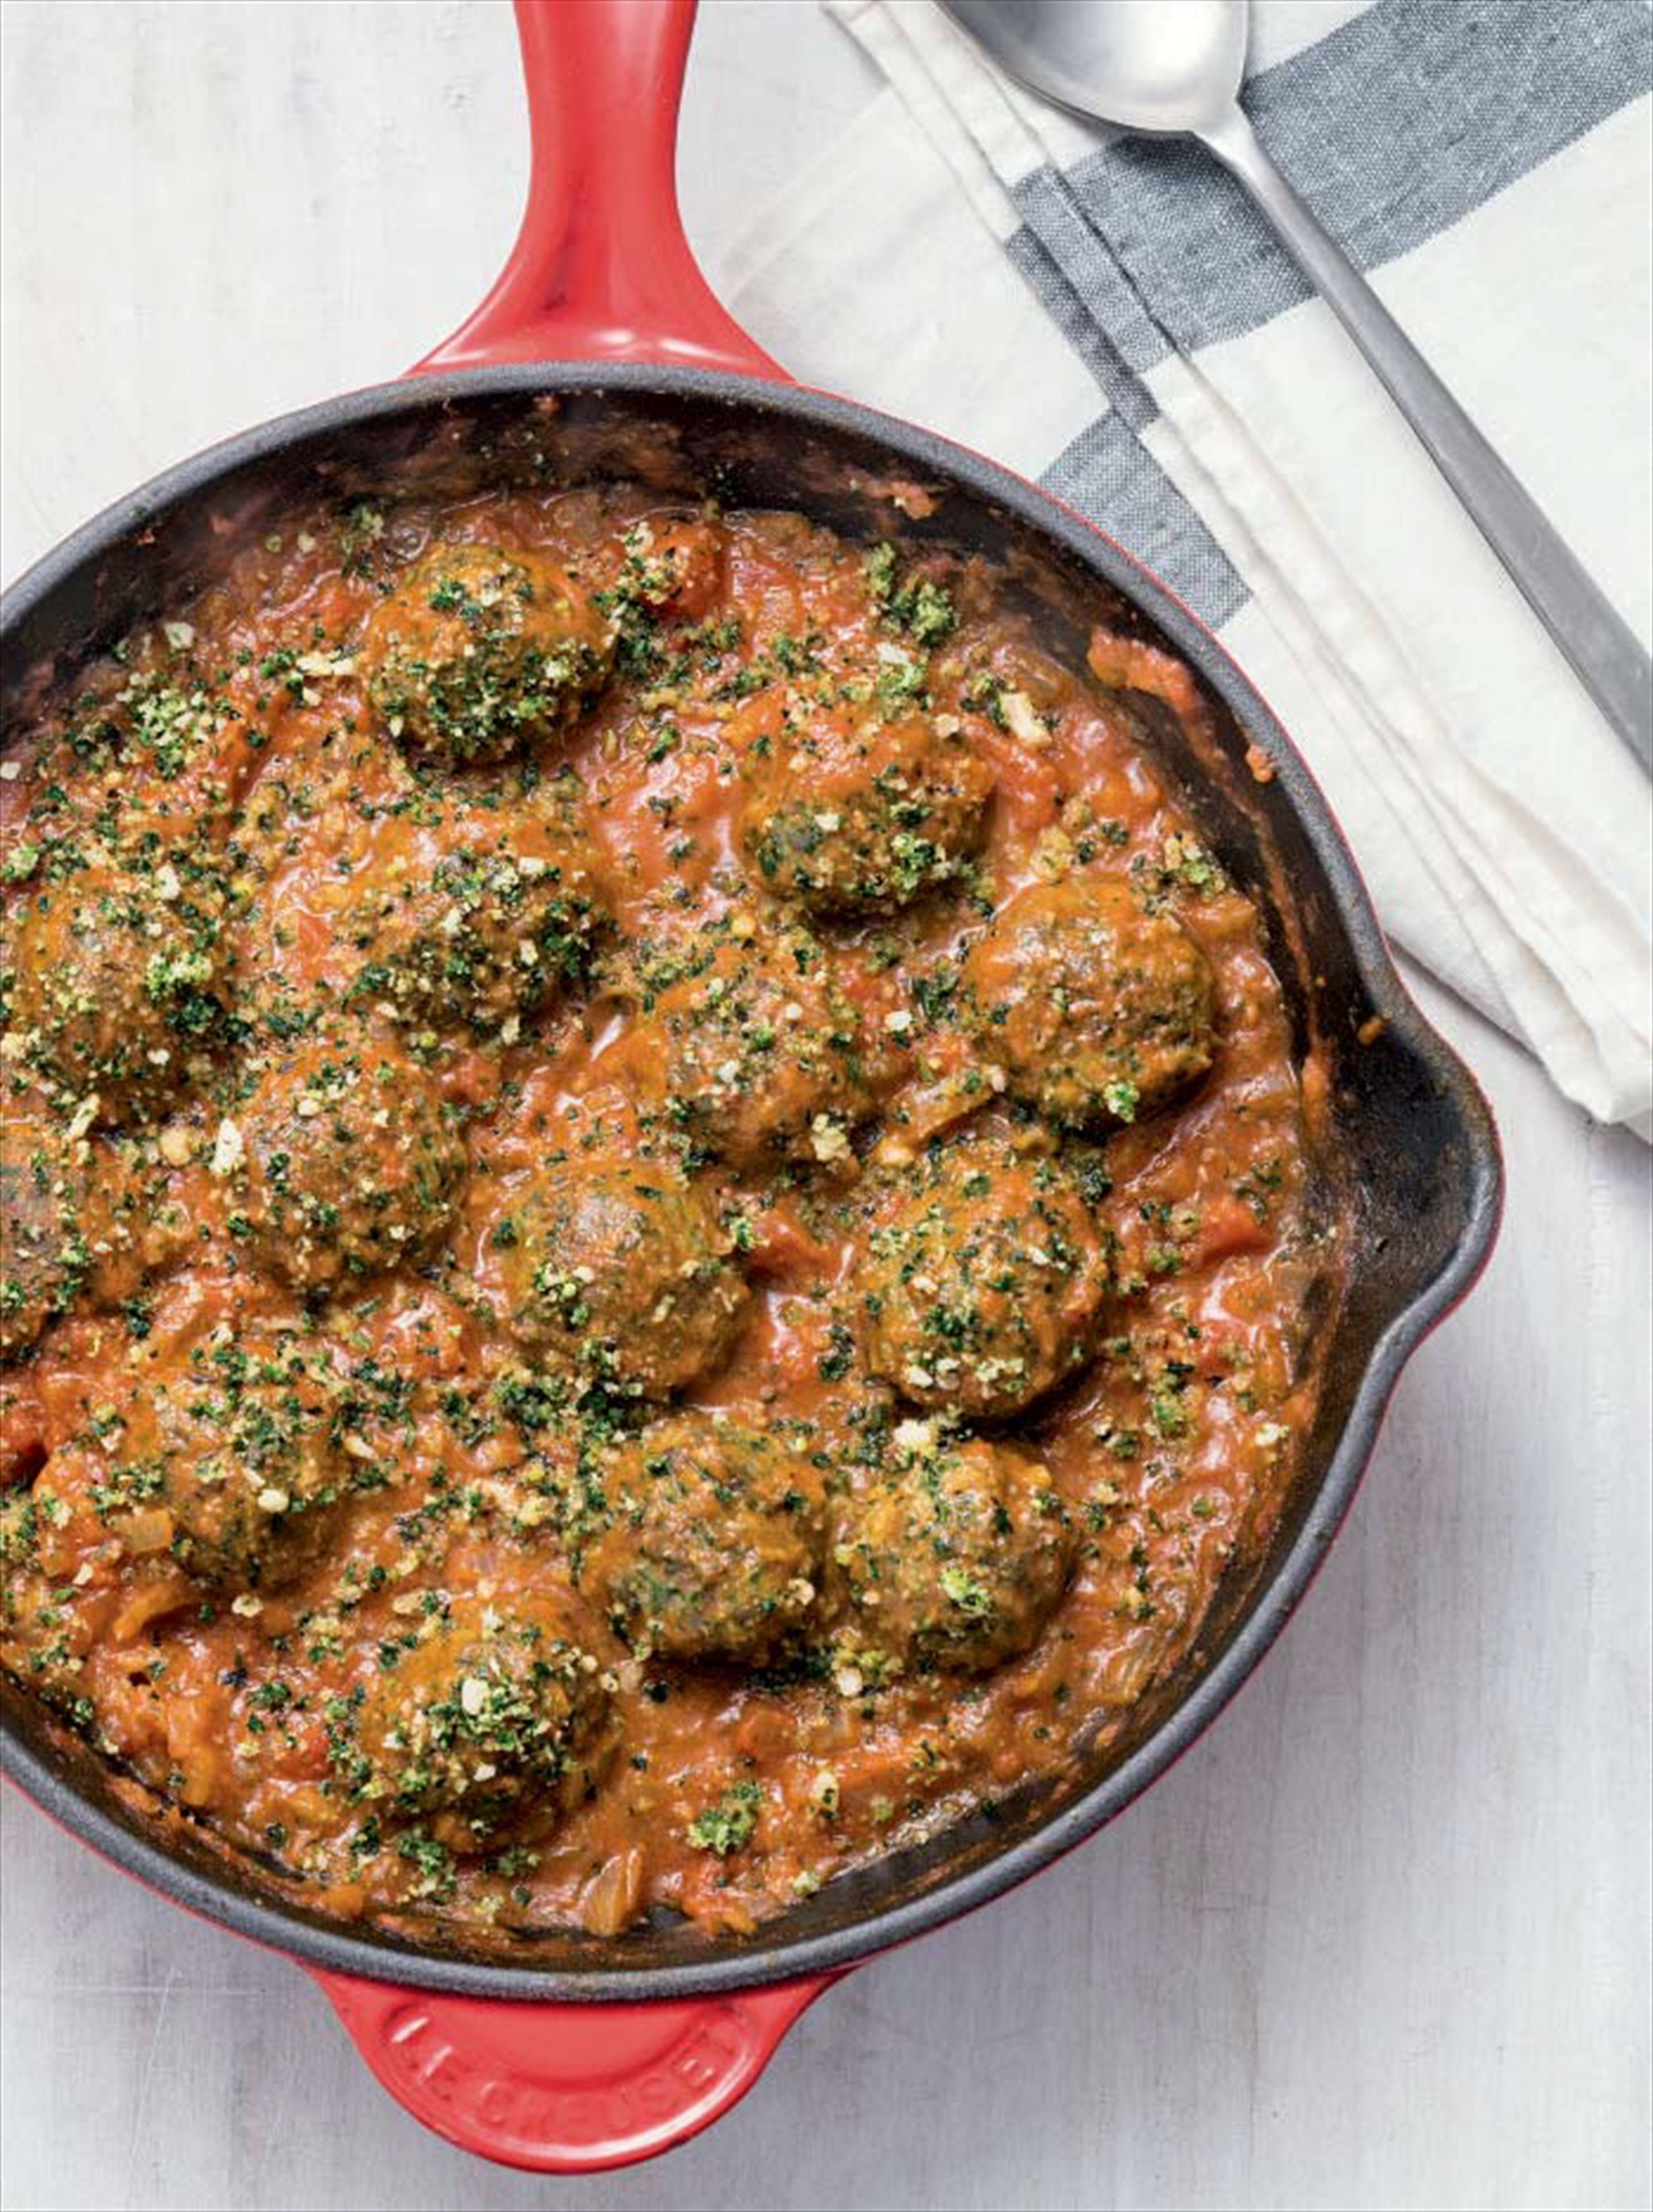 No-meat chestnut 'meatballs' with tomato sauce